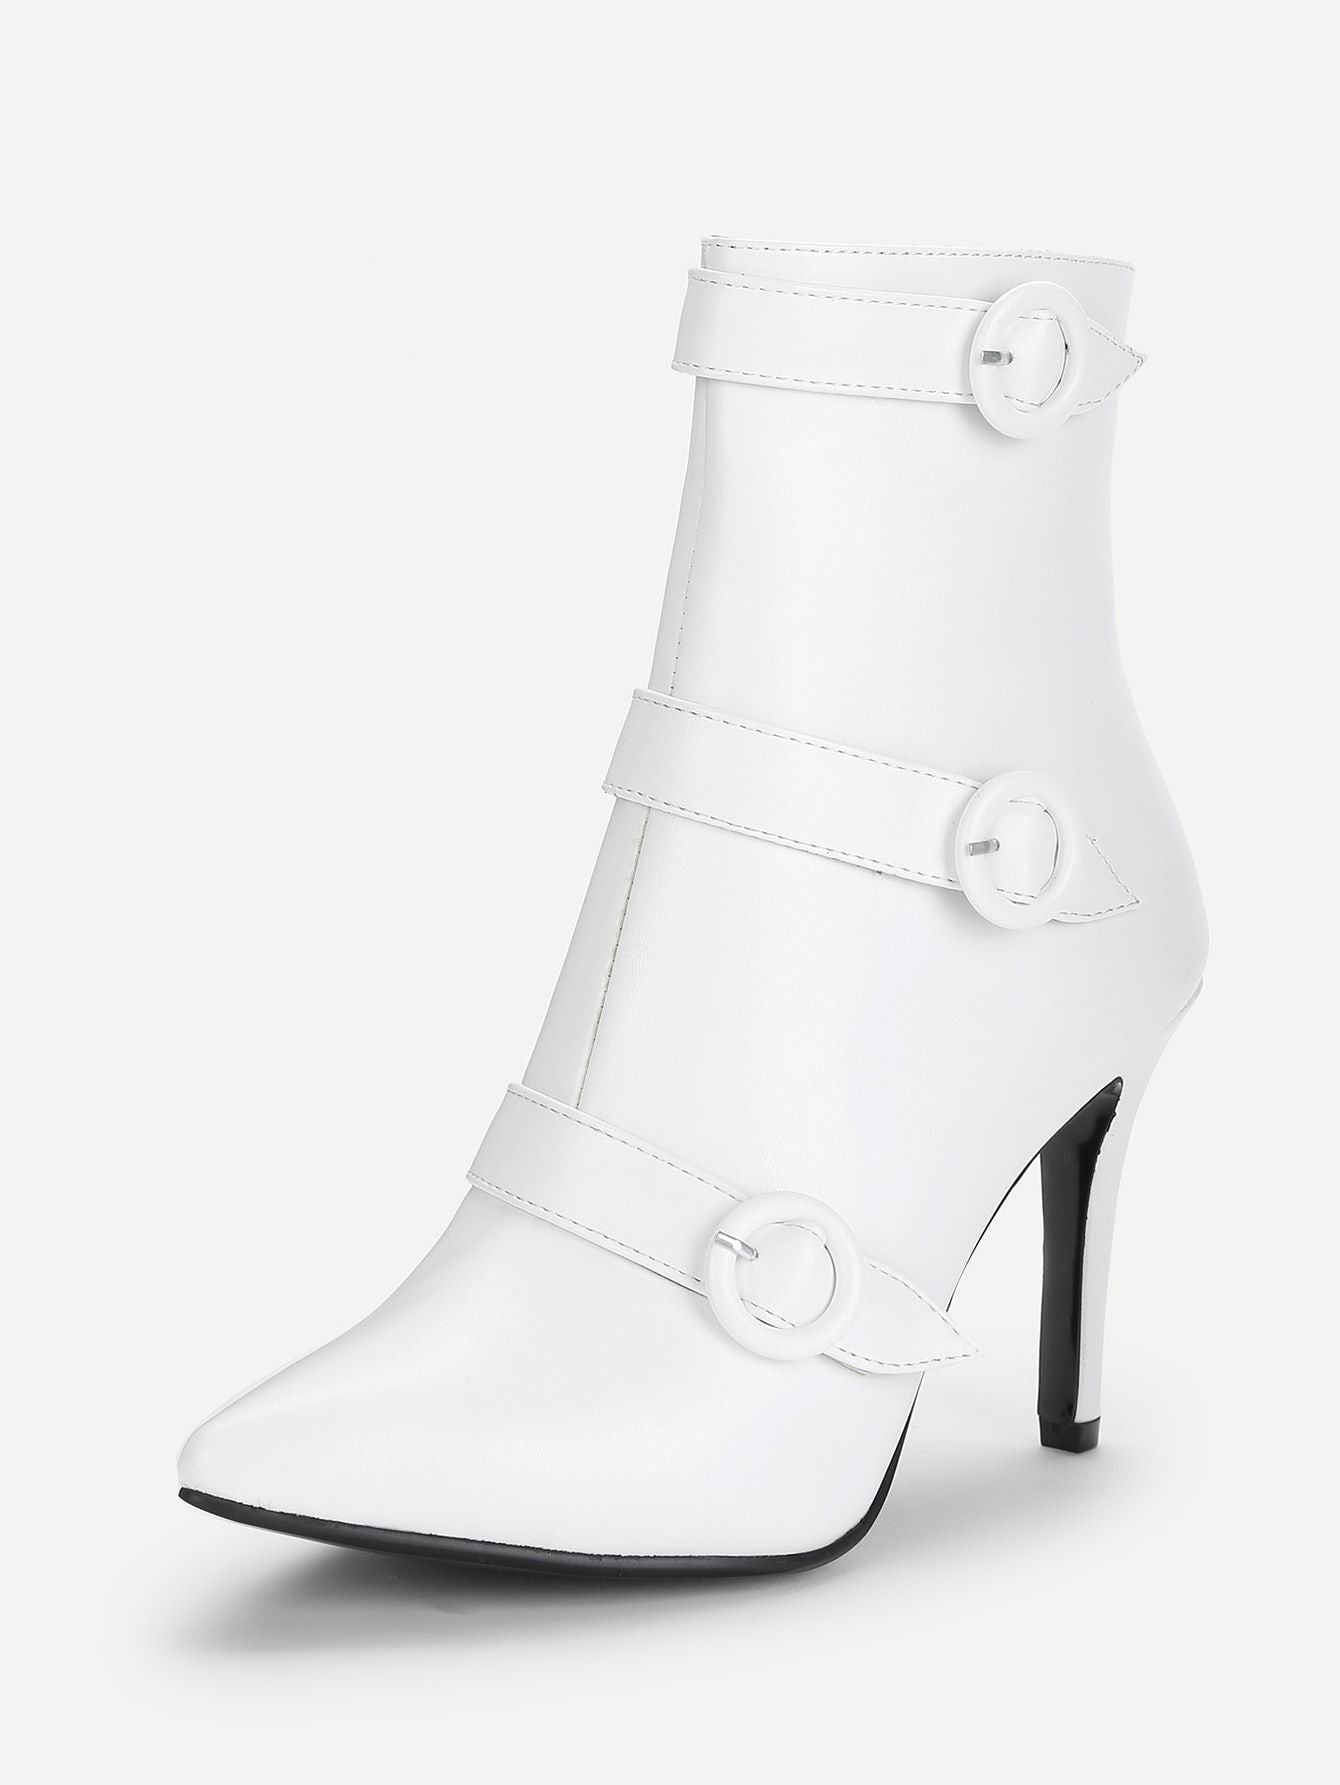 Buckle Strap Detail Stiletto Boots